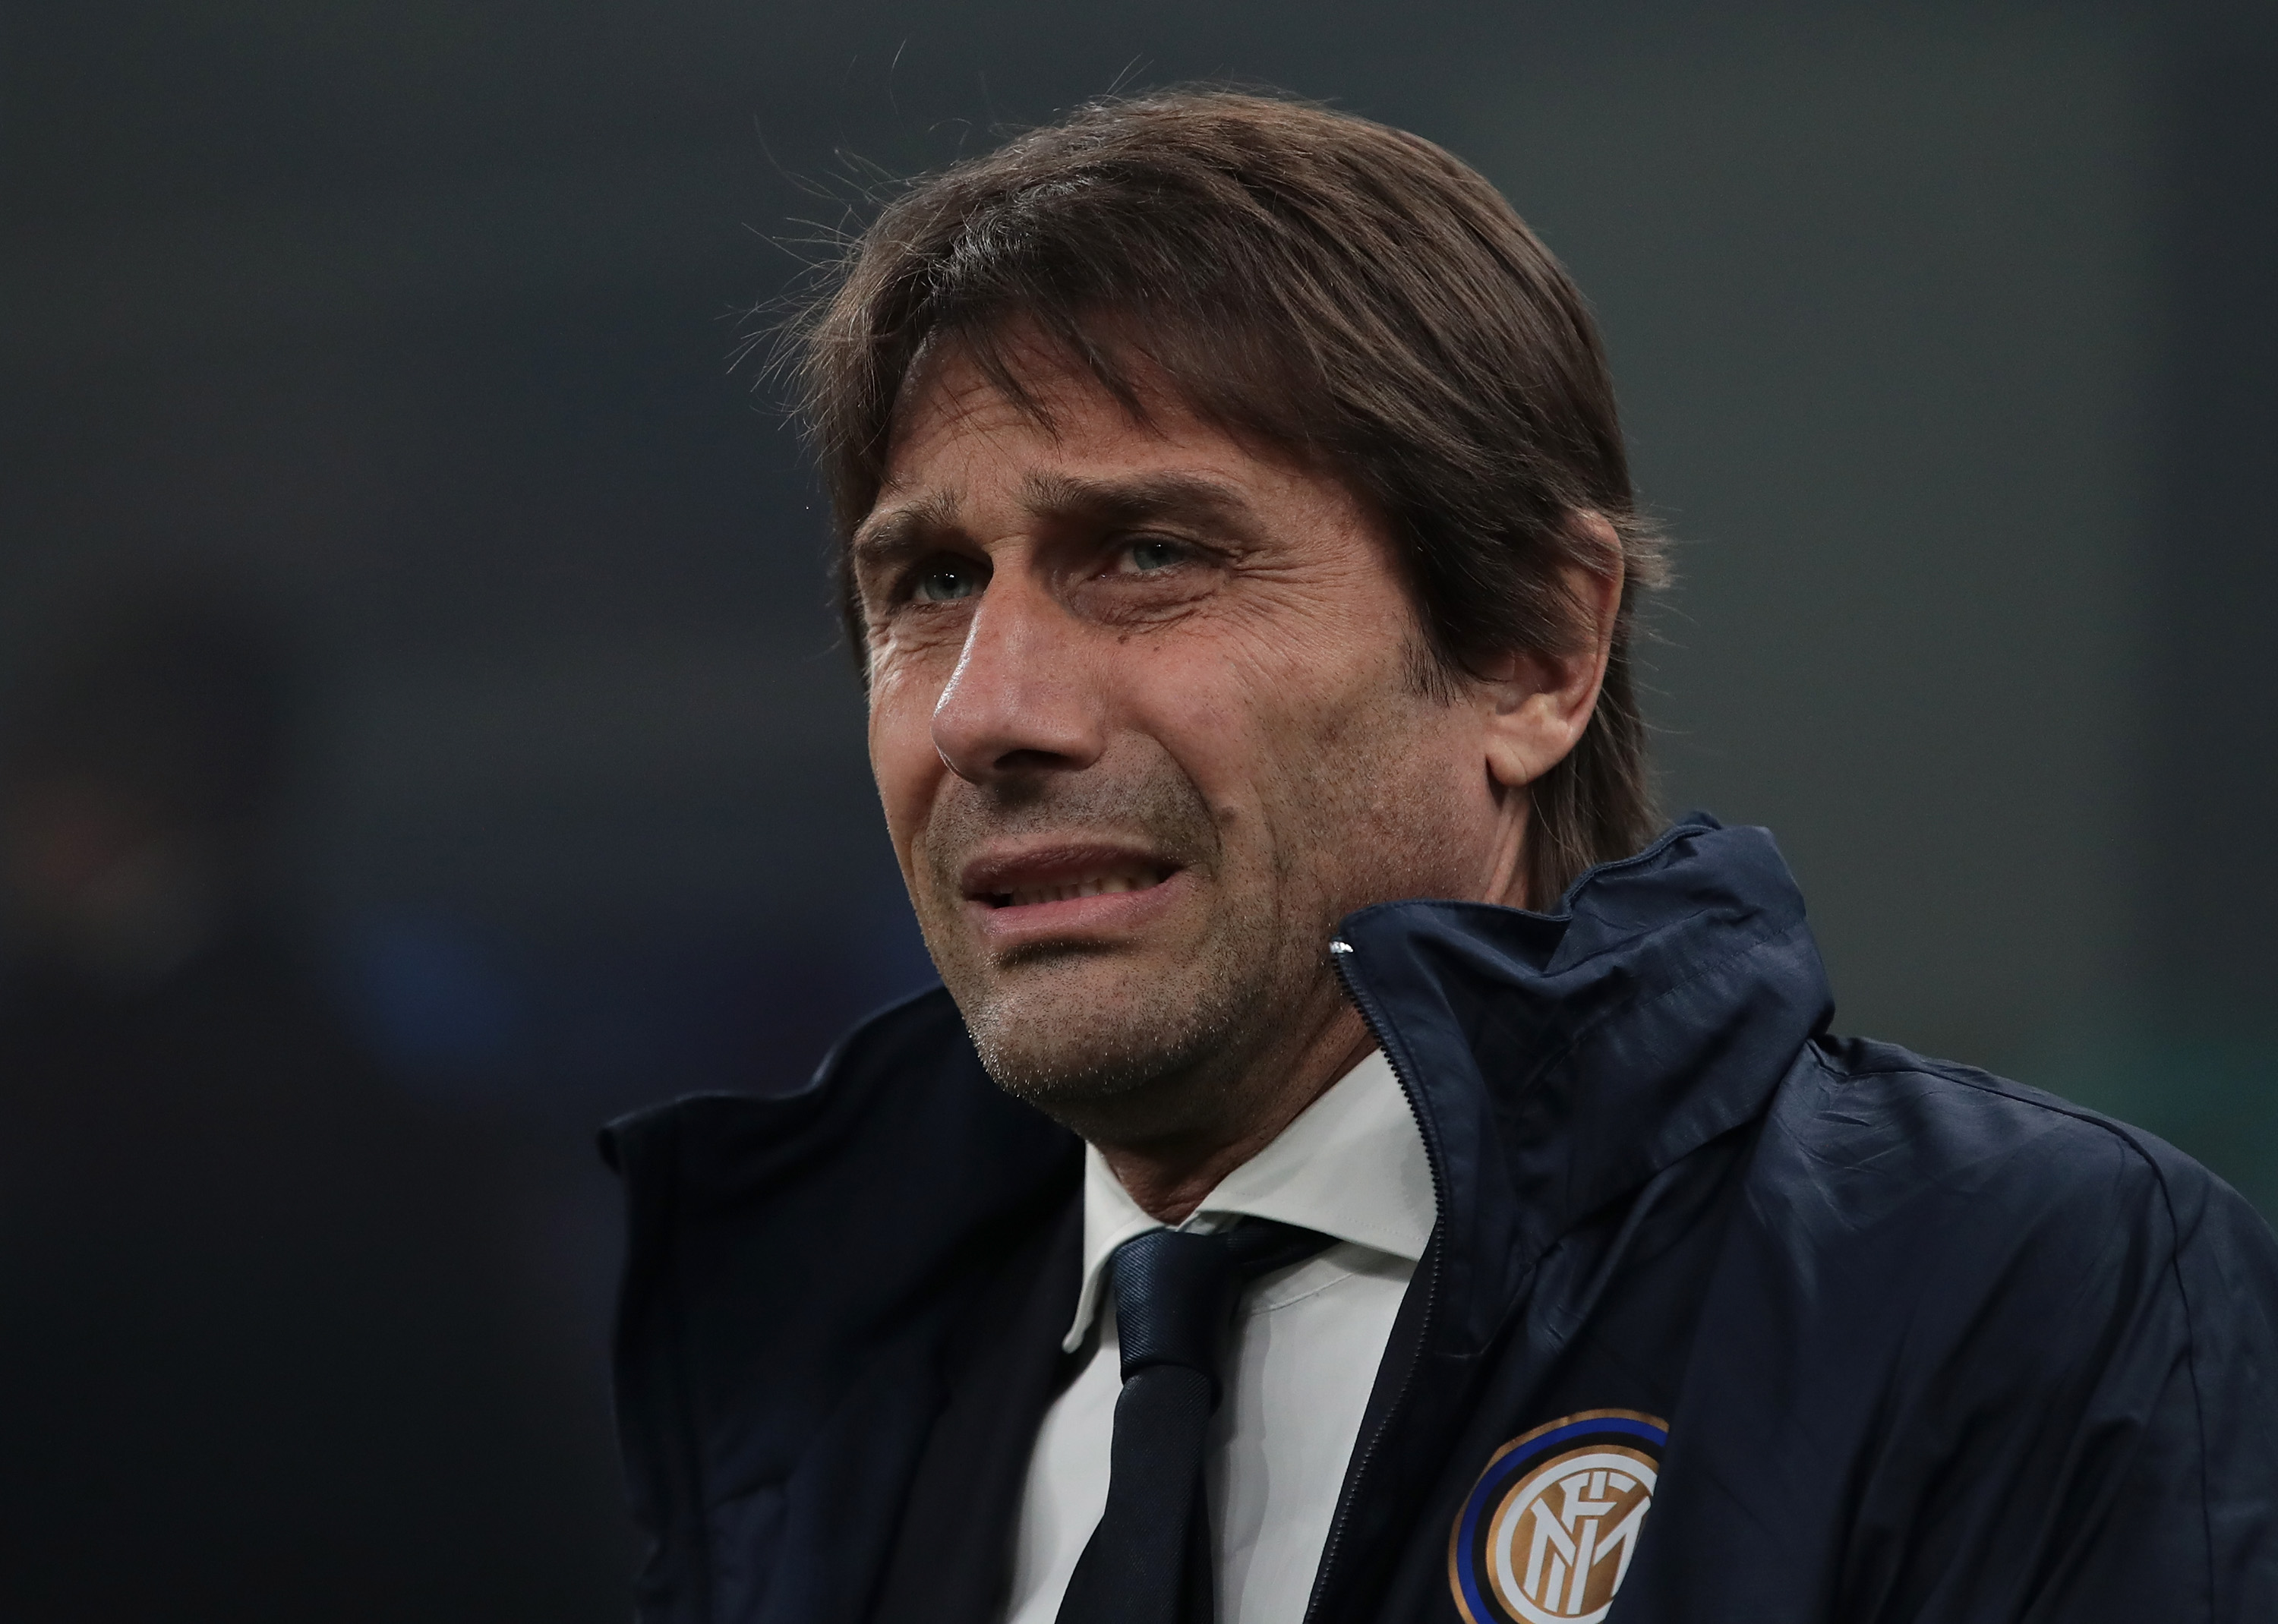 Conte has a few injury concerns ahead of Wednesday's game (Photo by Emilio Andreoli/Getty Images)